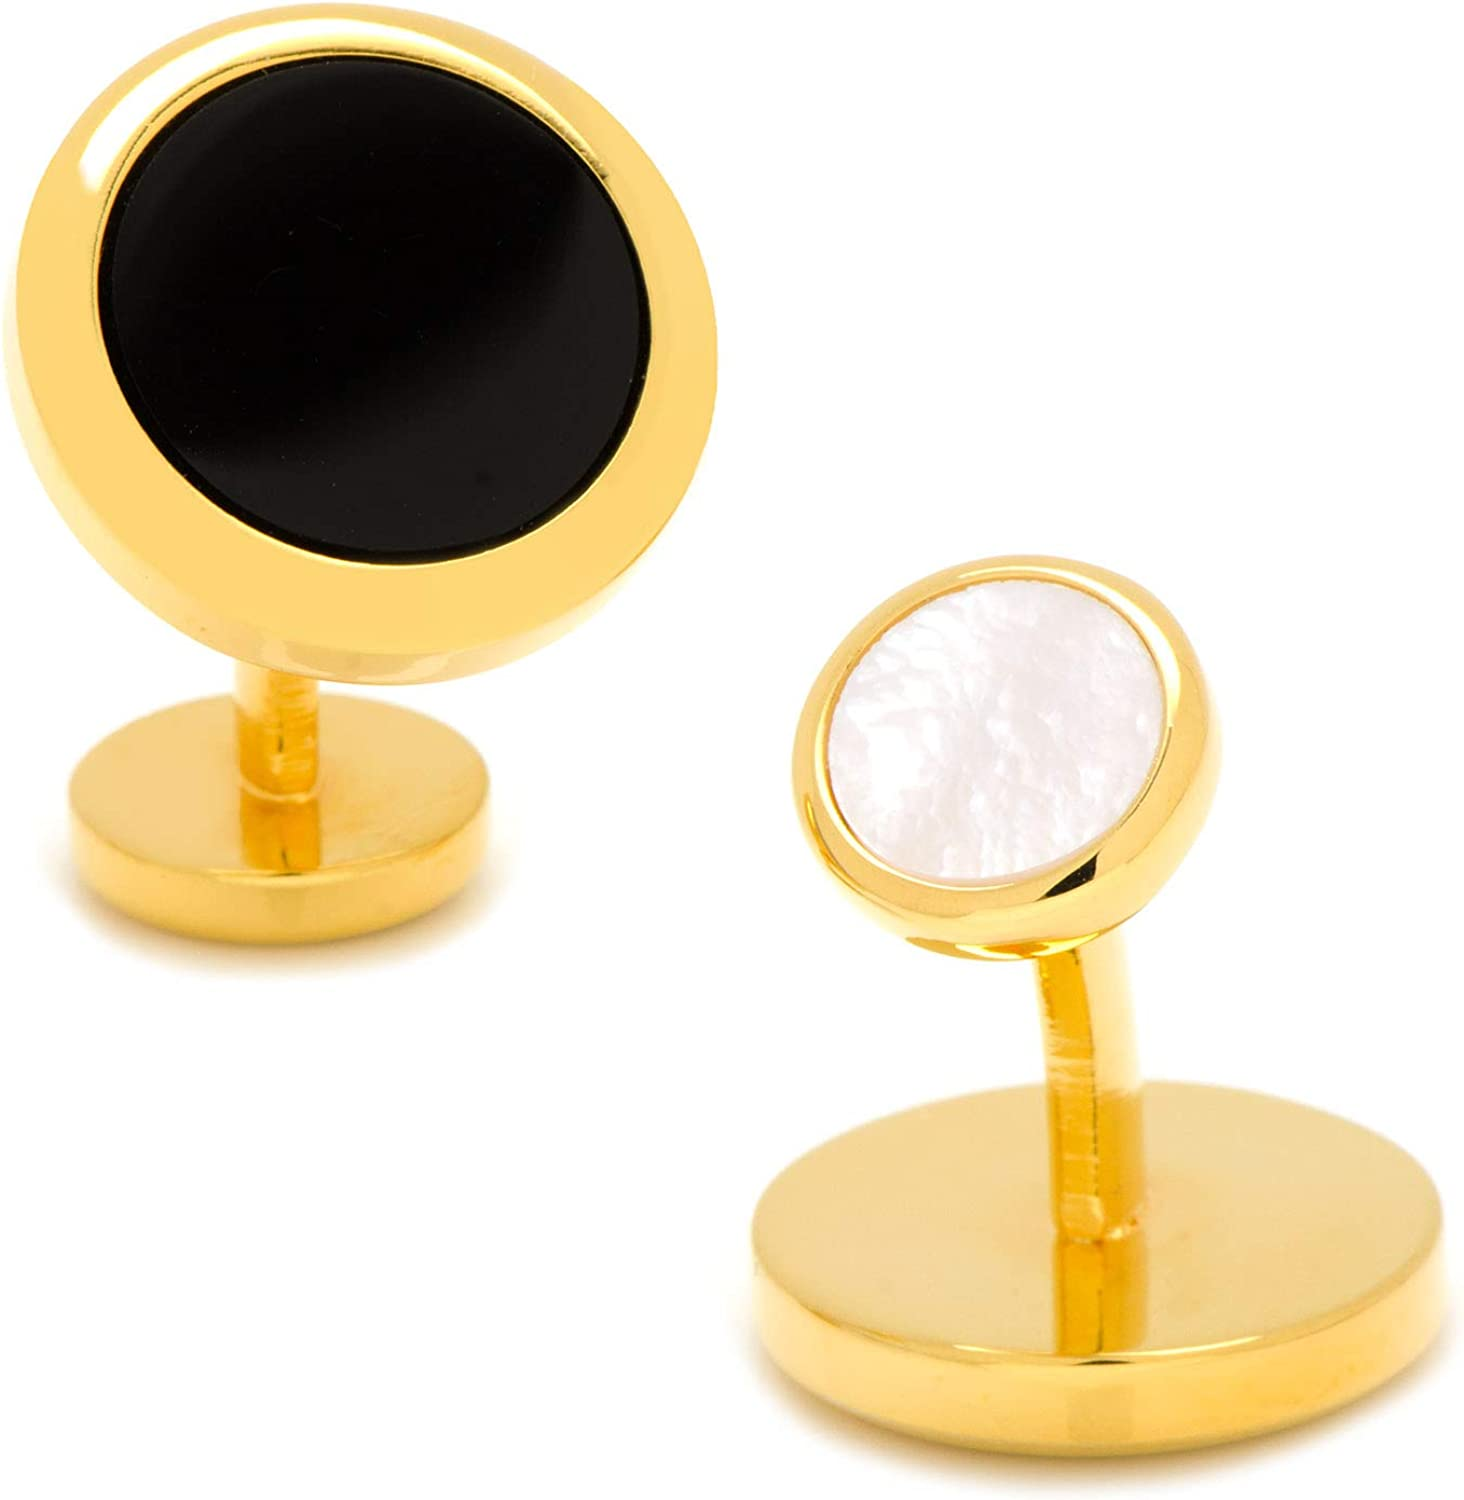 Ox and Bull Trading Co. Double Sided Gold Onyx Round Beveled Cufflinks